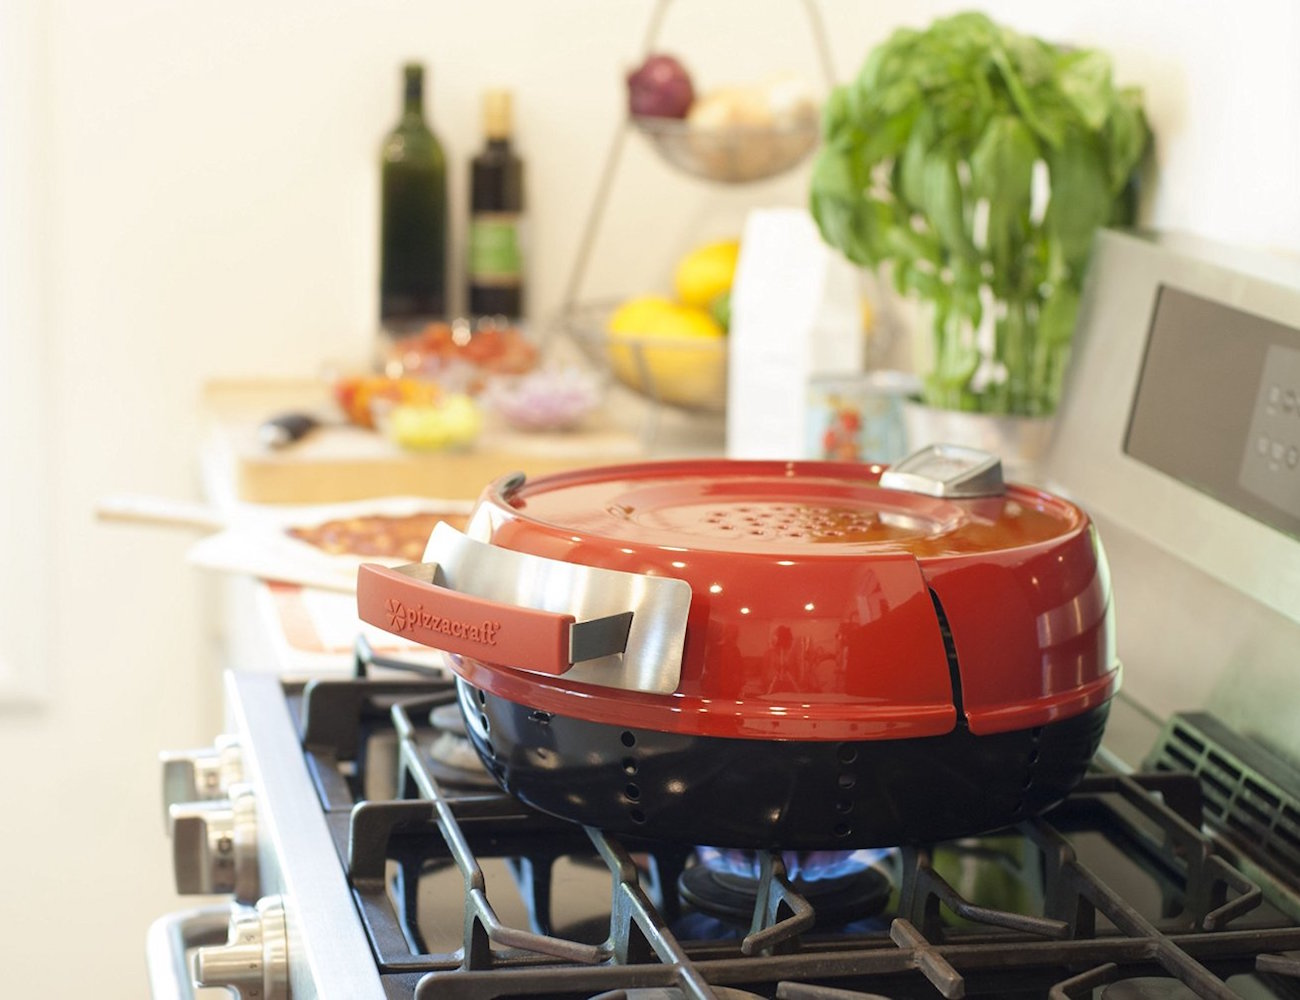 pizzeria-pronto-stovetop-oven-by-pizzacraft-03